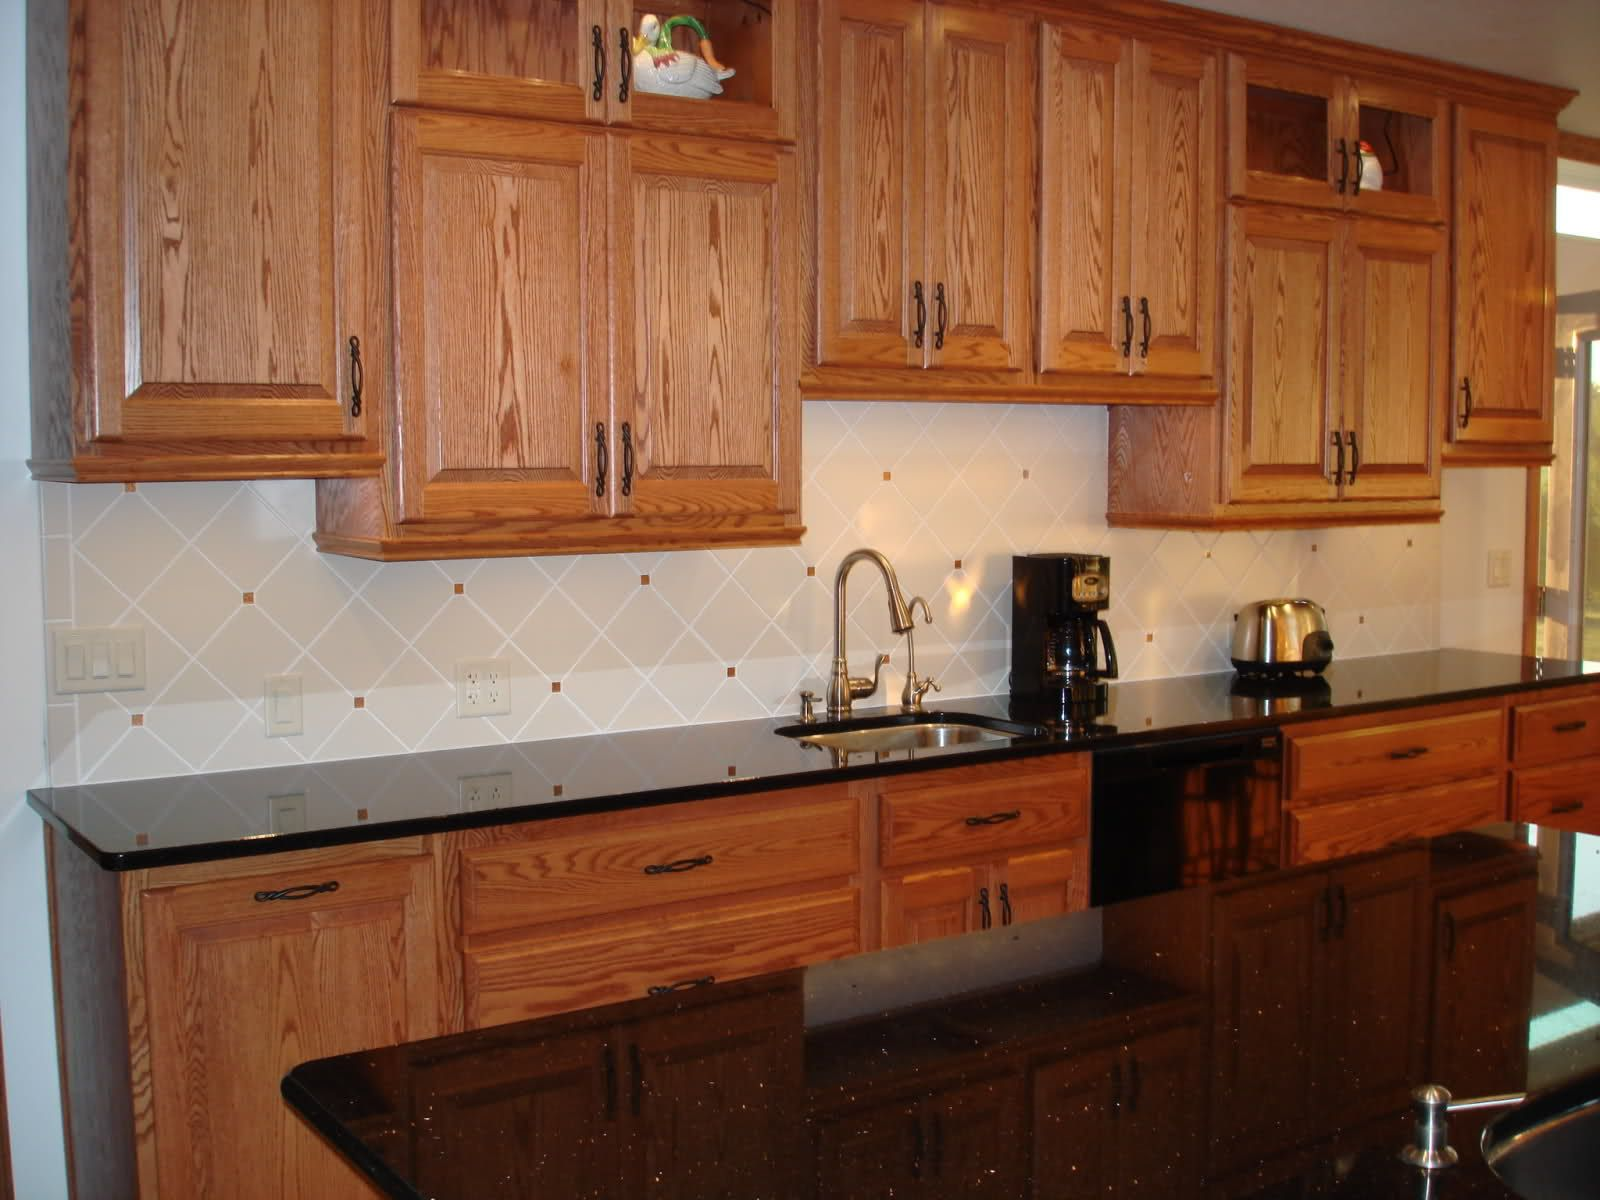 countertops kitchen backsplash oak cabinet kitchen kitchen redo oak